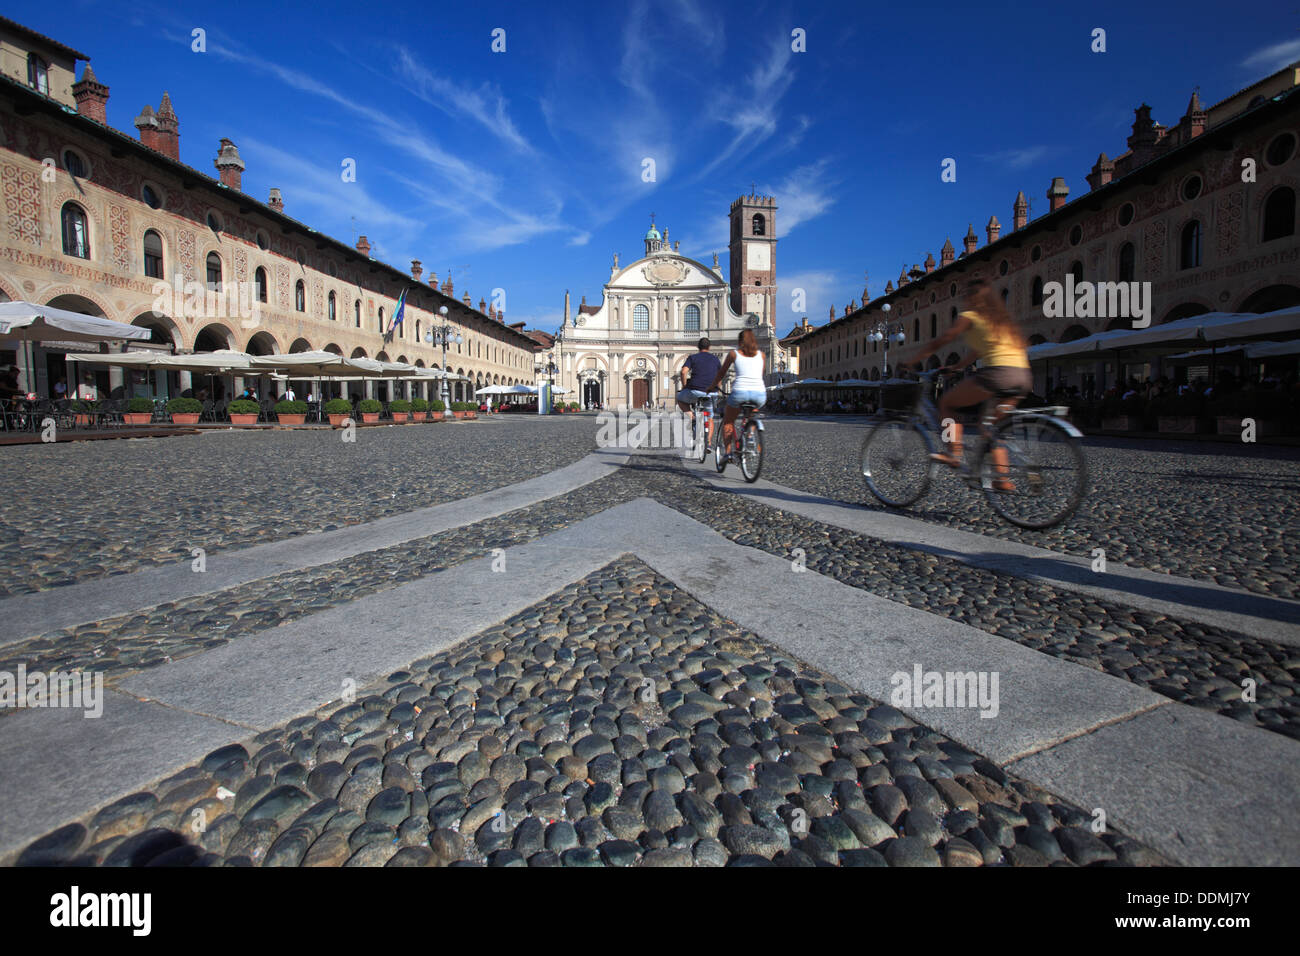 Piazza Ducale with the Cathedral facade, Vigevano, Lombardy, Italy - Stock Image